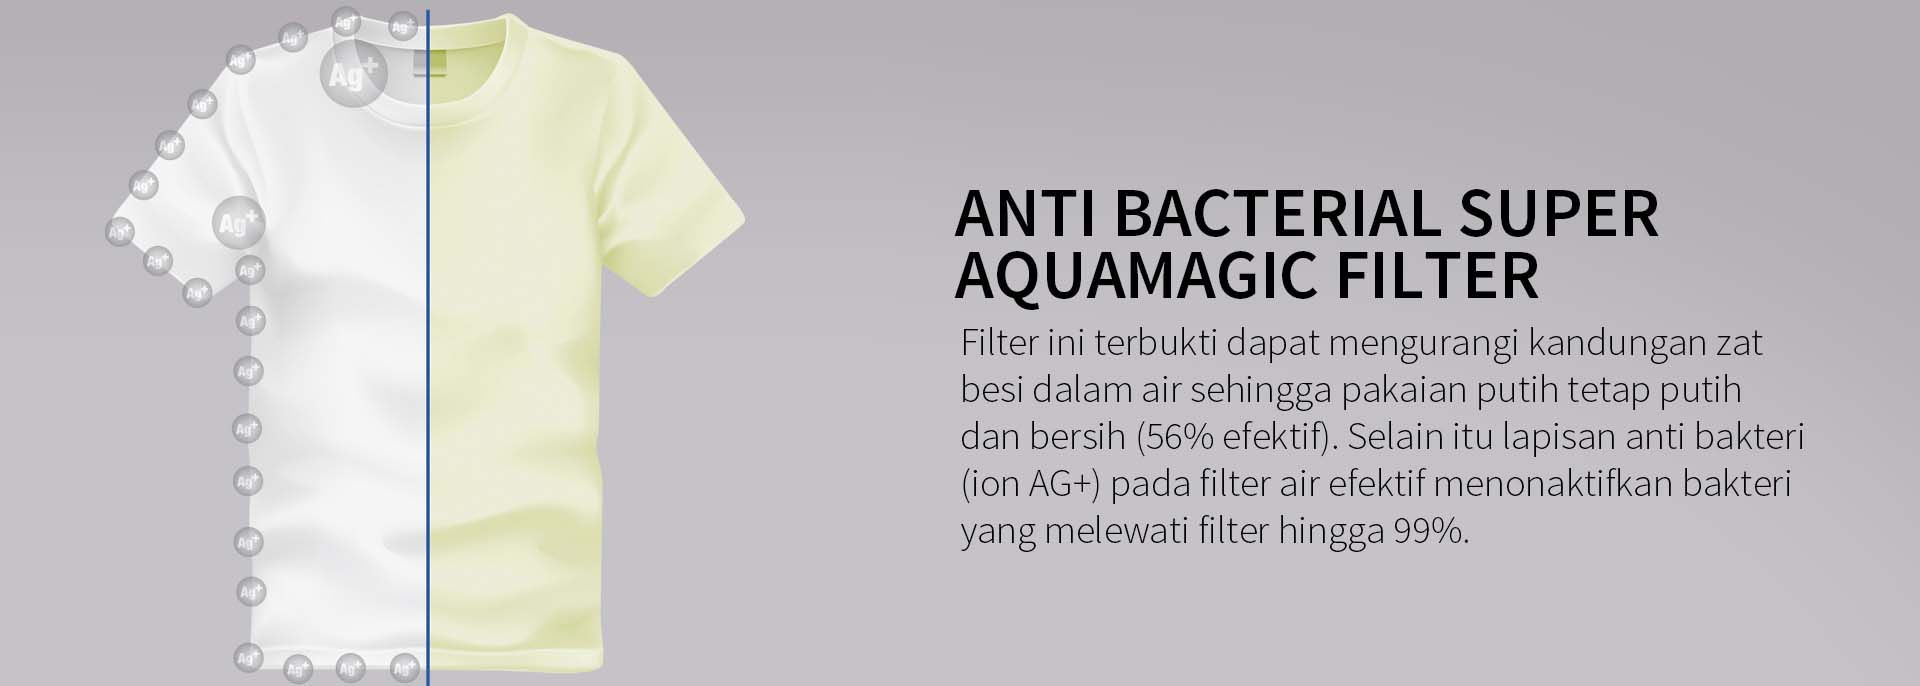 Anti%20Bacterial%20Super%20Aquamagic%20Filter%202.jpg